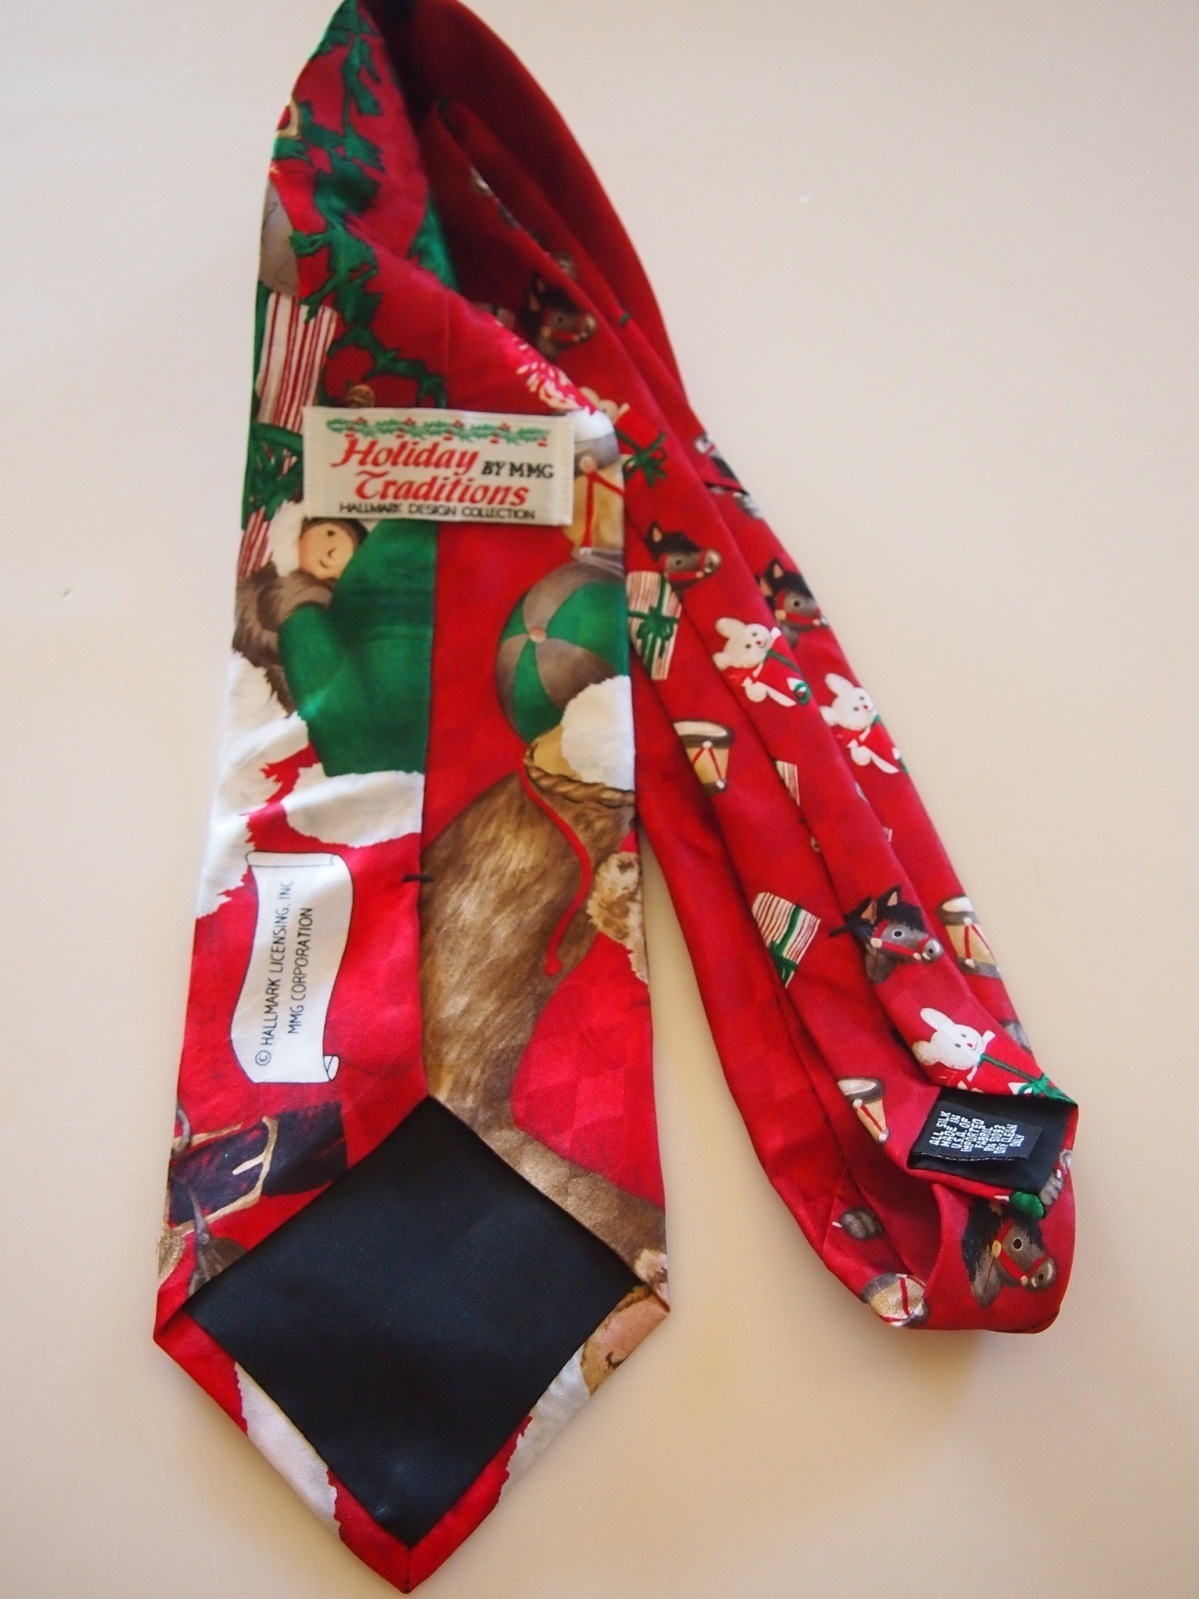 Hallmark Holiday Traditions by MMG Santa Christmas Toys Red Silk Tie